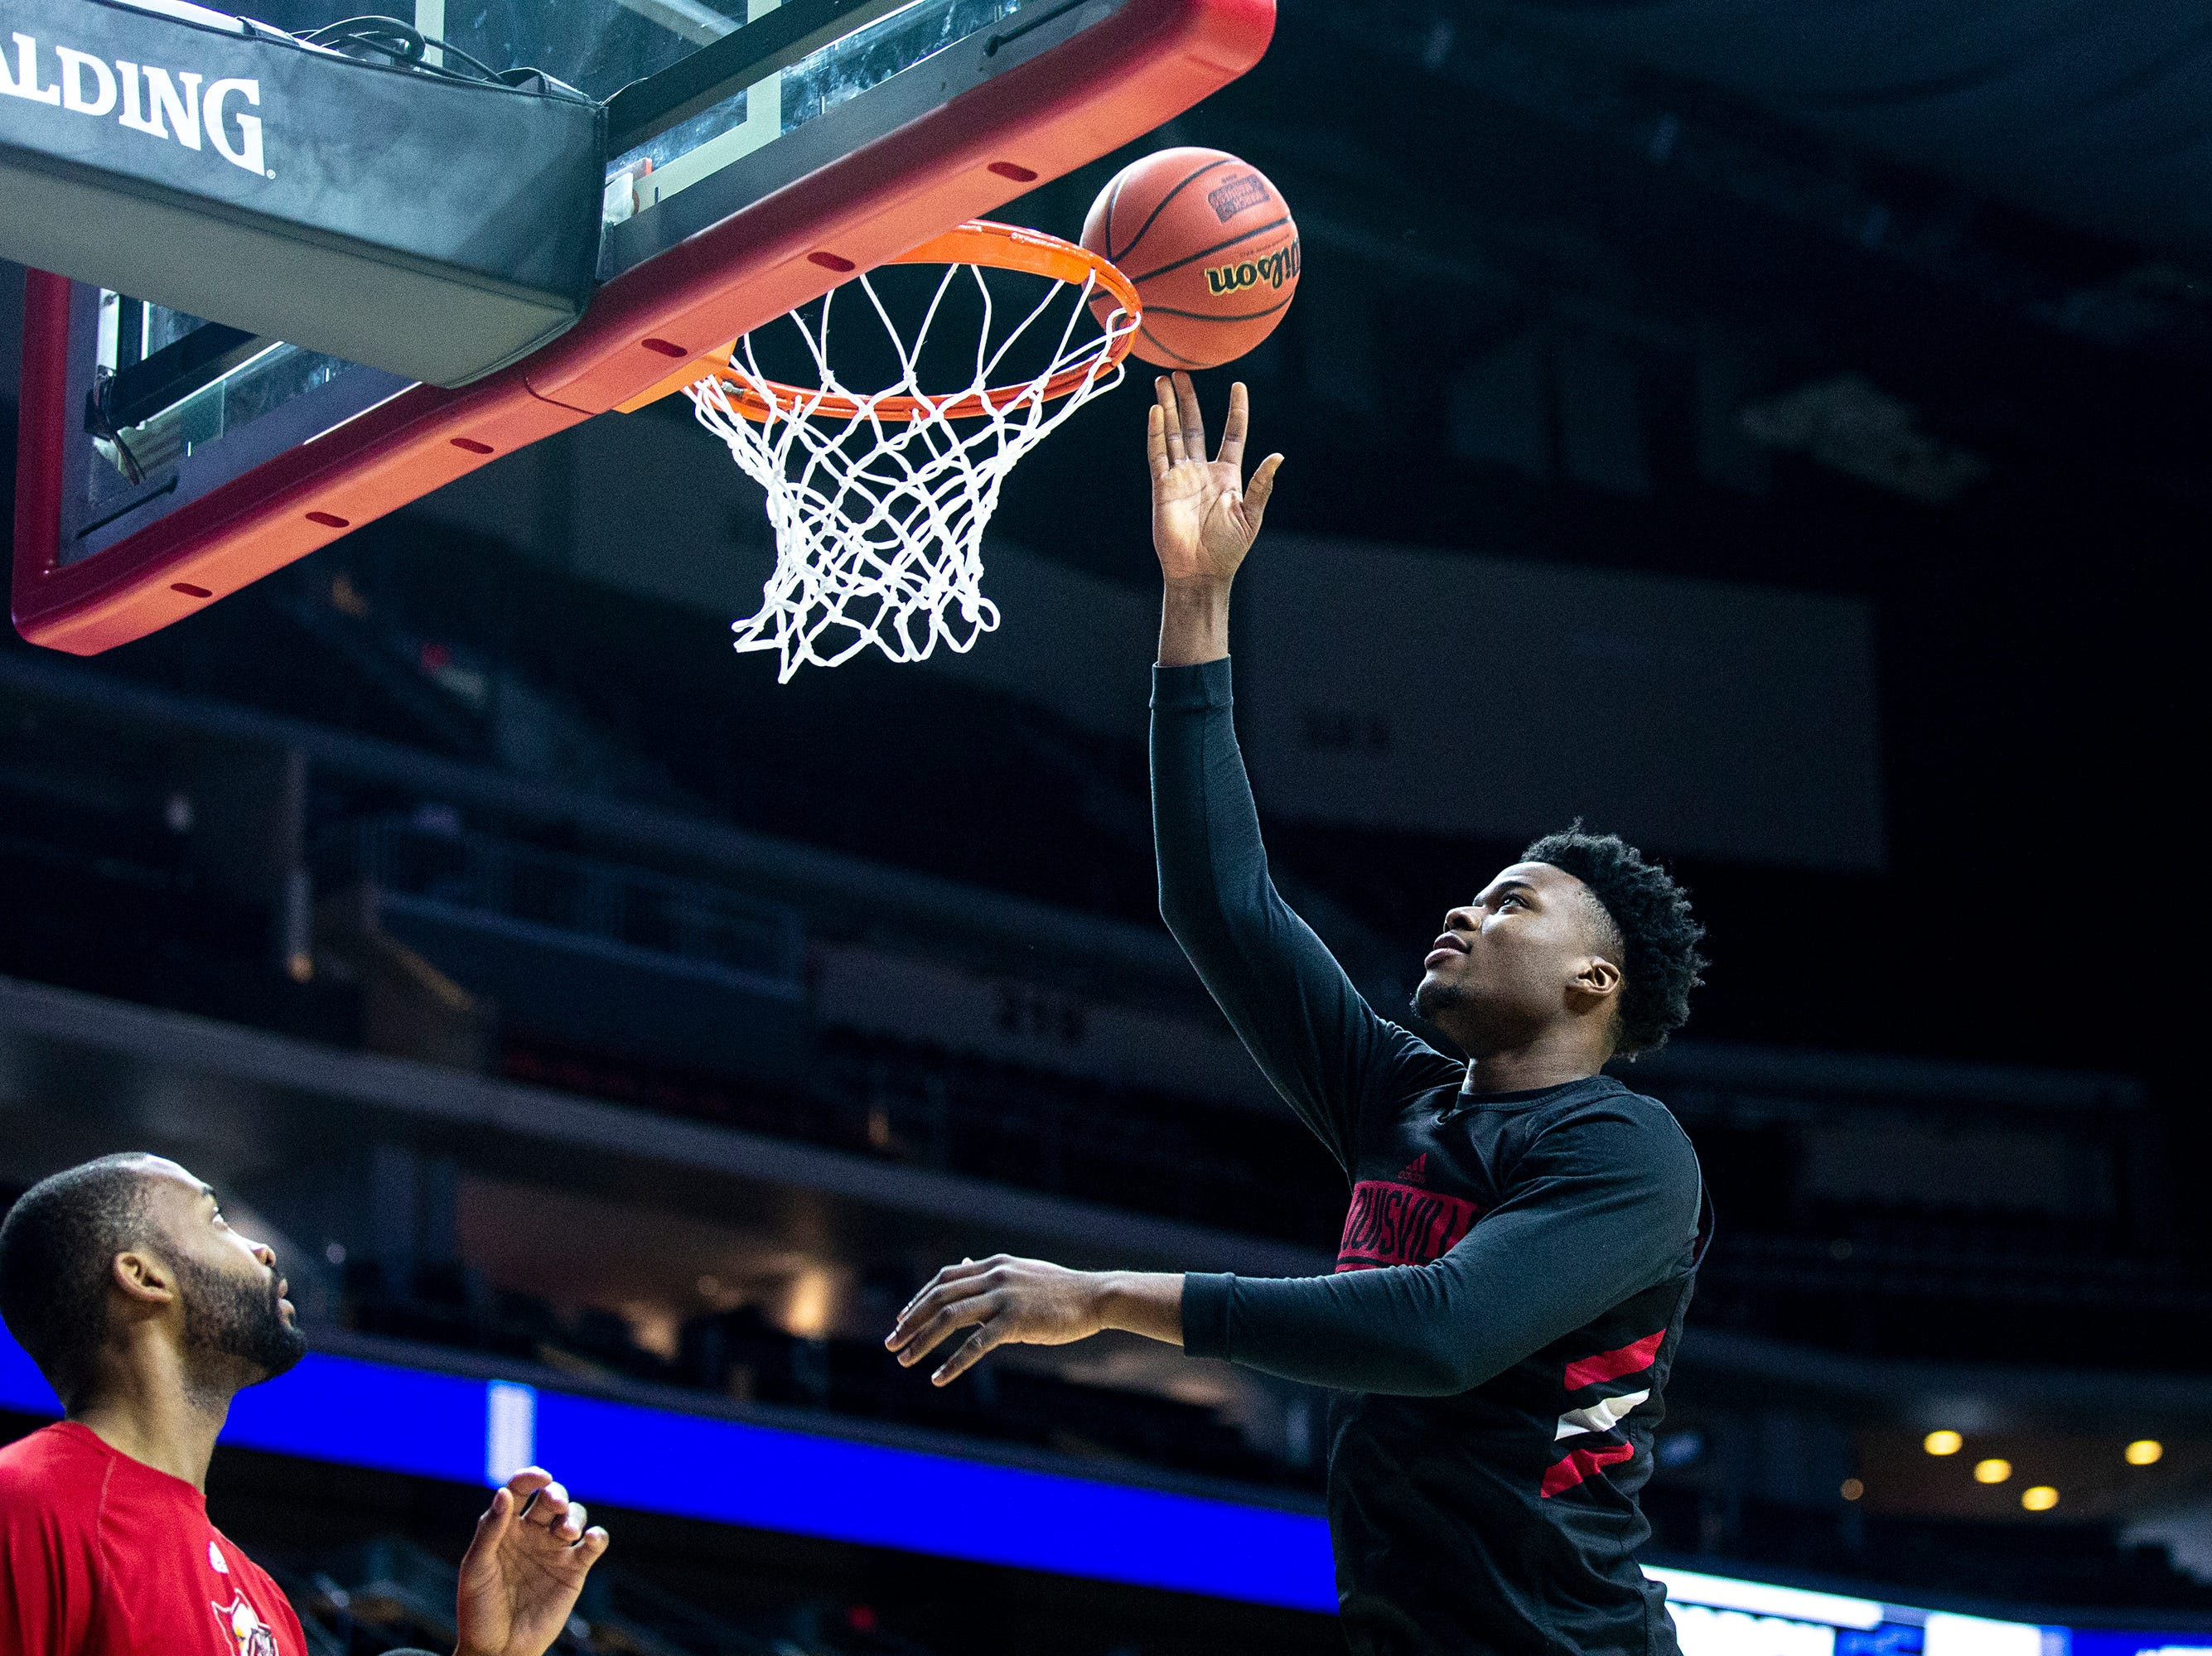 Louisville's Steven Enoch shoot a lay-up during Louisville's open practice before the first round of the NCAA Men's Basketball Tournament on Wednesday, March 20, 2019, at Wells Fargo Arena in Des Moines, Iowa.